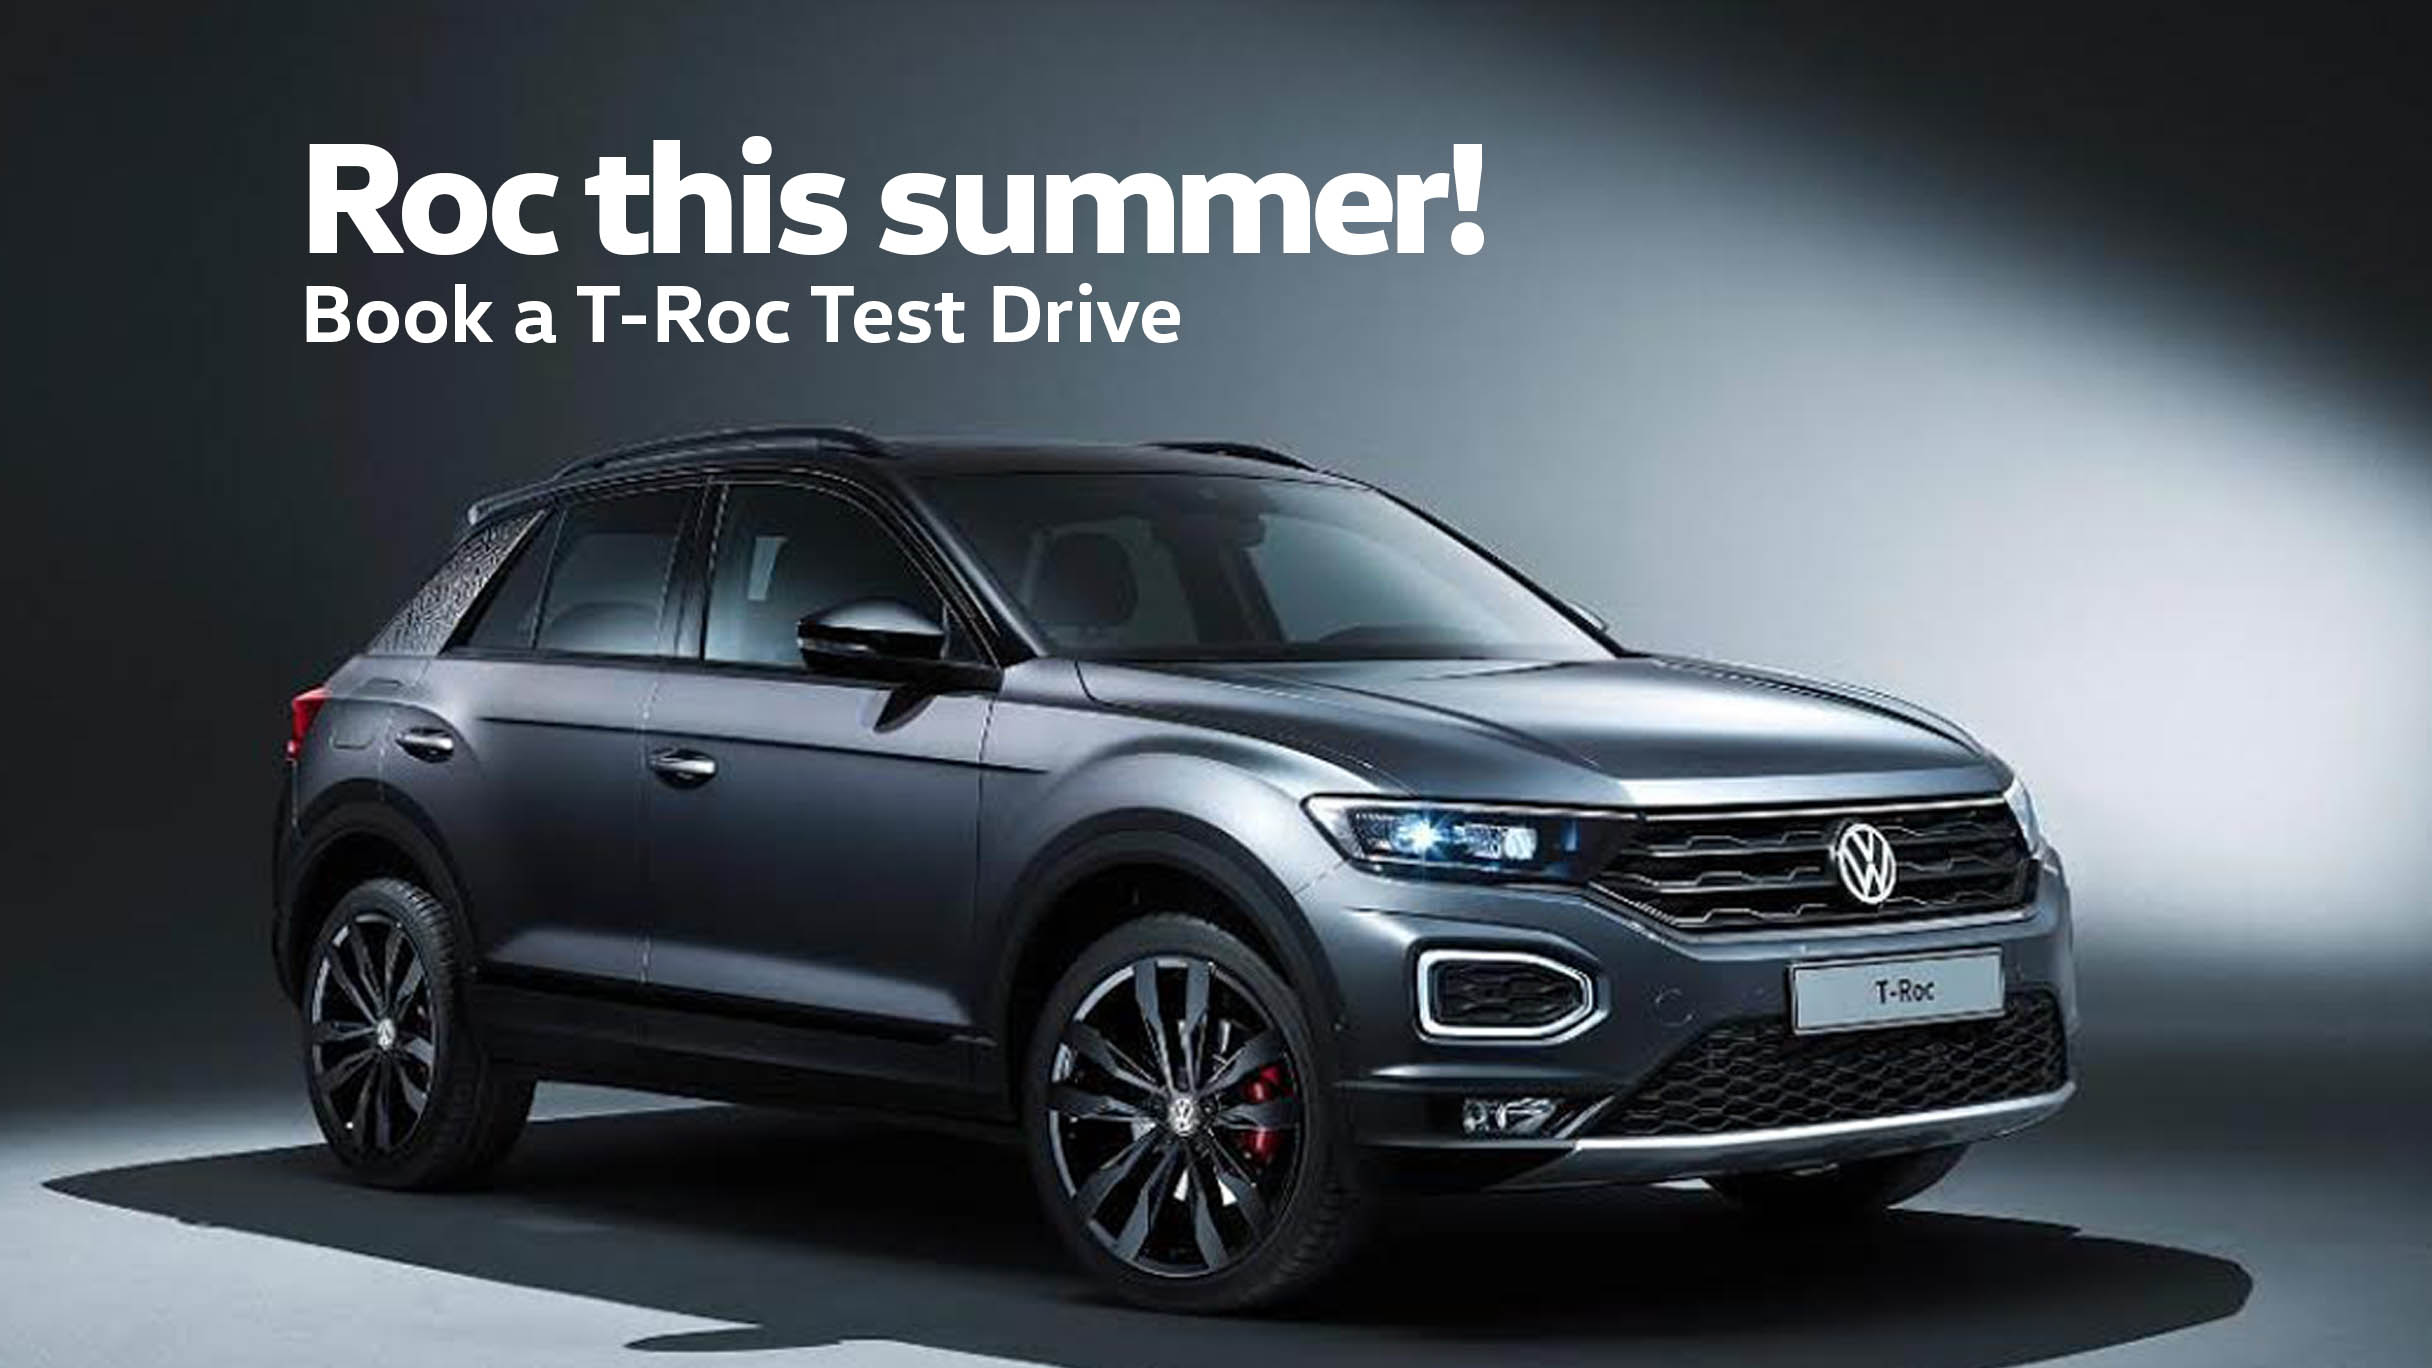 Test drive the T-Roc SUV at Barons Pietermaritzburg